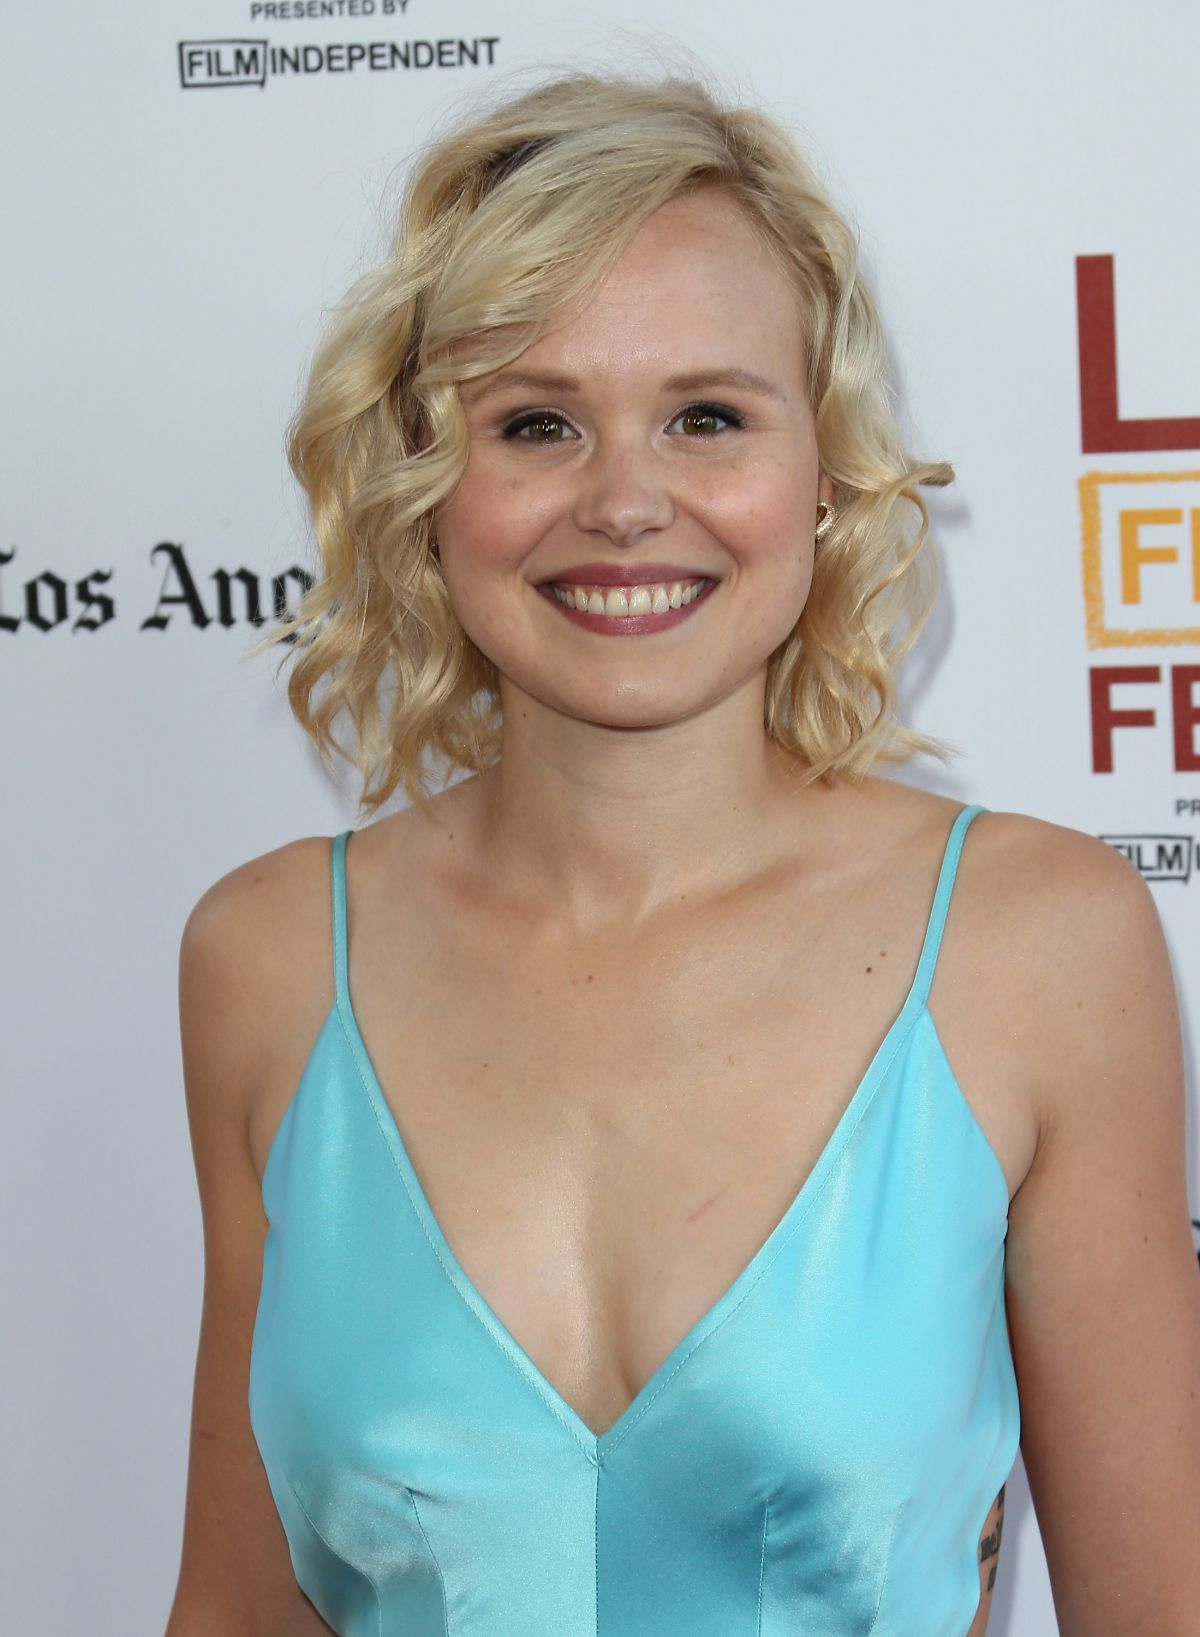 Alison Pill earned a  million dollar salary - leaving the net worth at 2 million in 2017